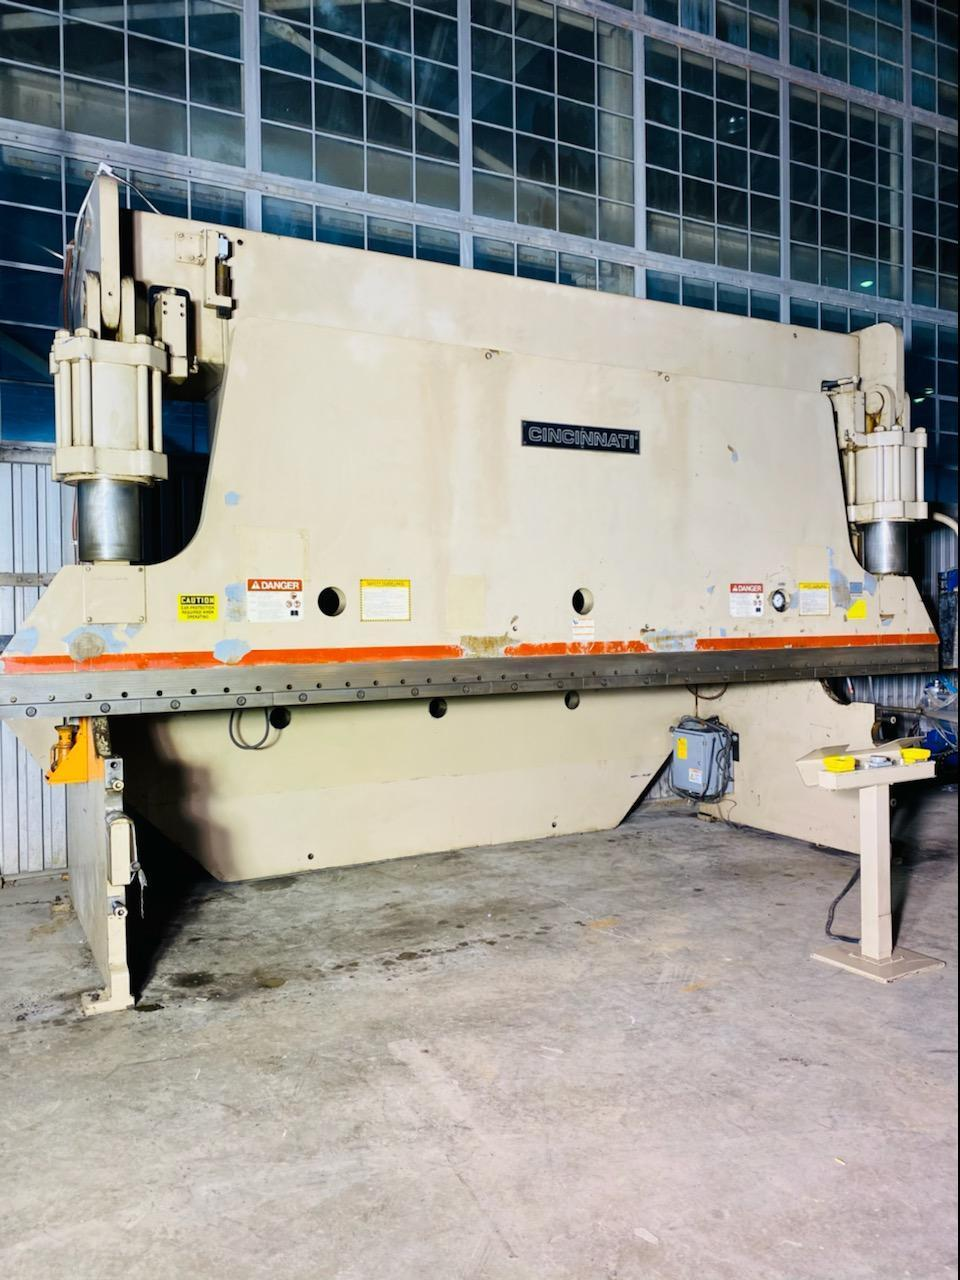 350 TON X 20' CINCINNATI FM 350FMX16 HYDRAULIC PRESS BRAKE. STOCK # 0848720